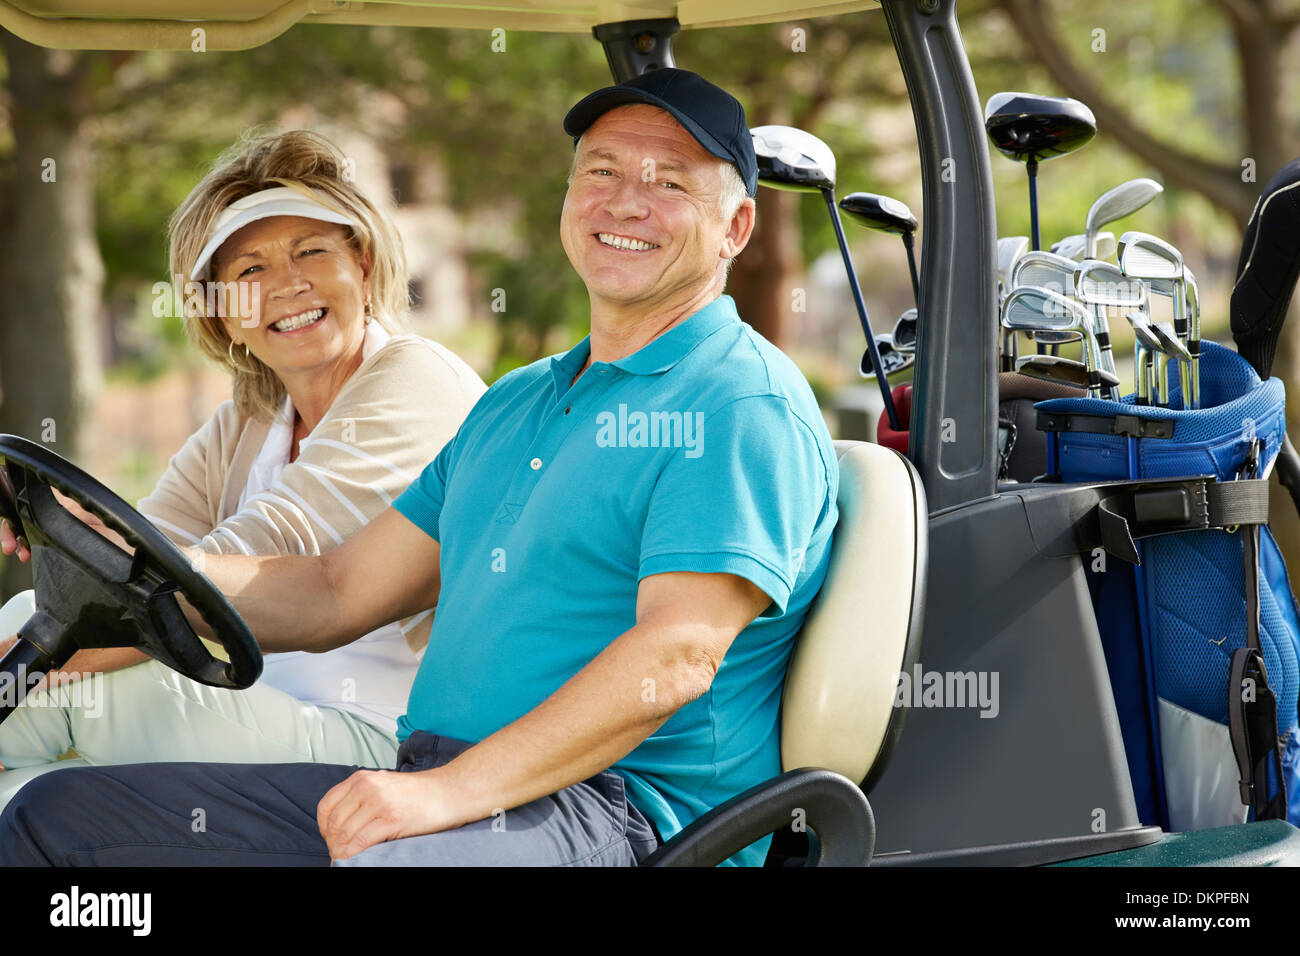 Senior couple smiling in golf cart - Stock Image